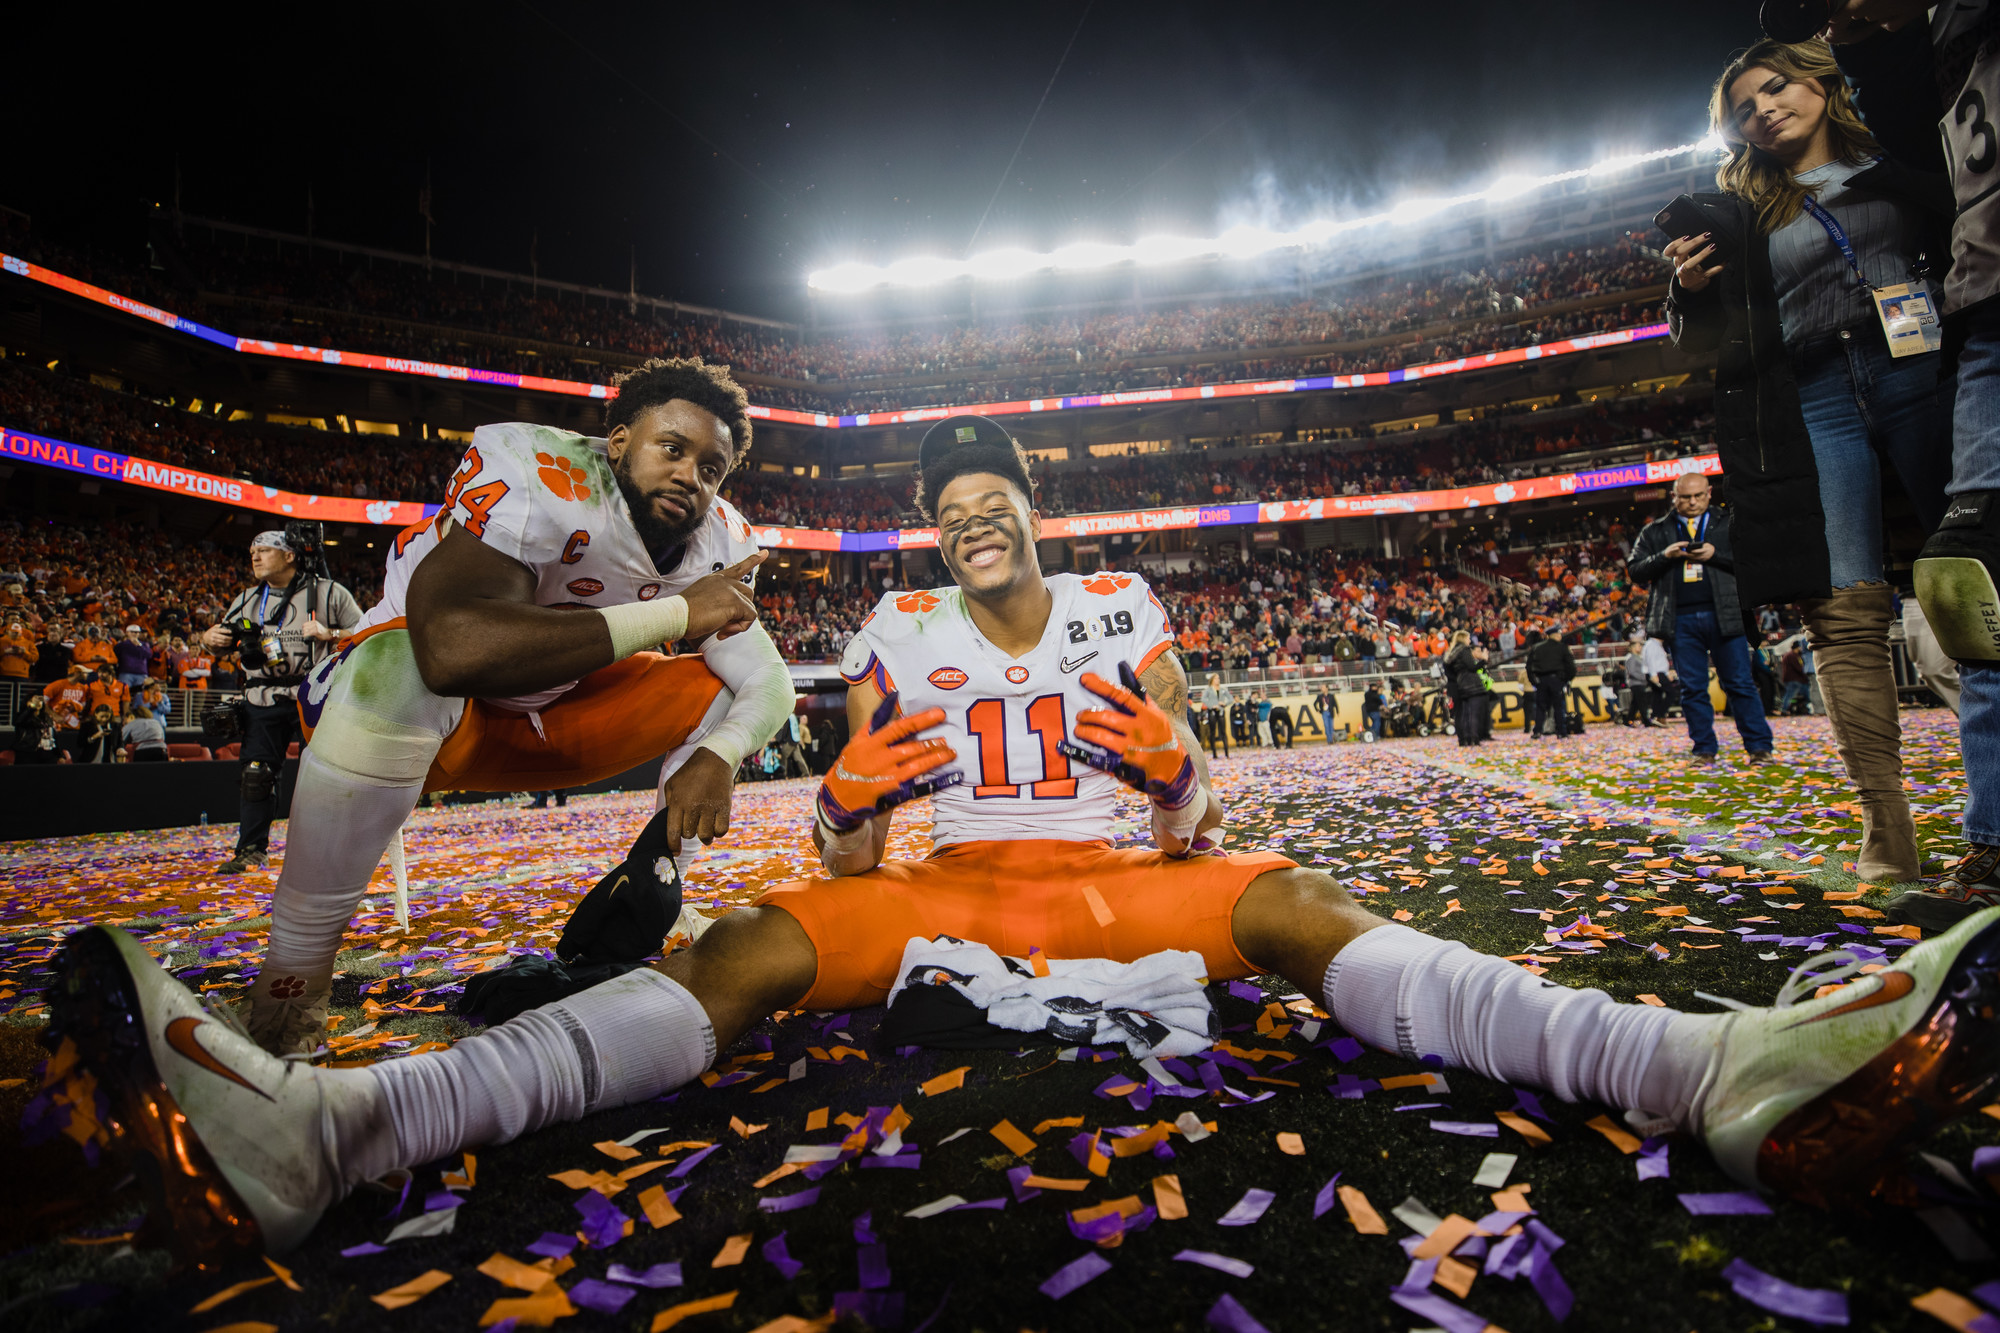 Clemson safety Isaiah Simmons, center, celebrates with defensive end Justin Foster at Levi's Stadium in Santa Clara, California, on Monday, Jan. 7 after routing Alabama 44-16 to win the 2019 CFP National Championship.